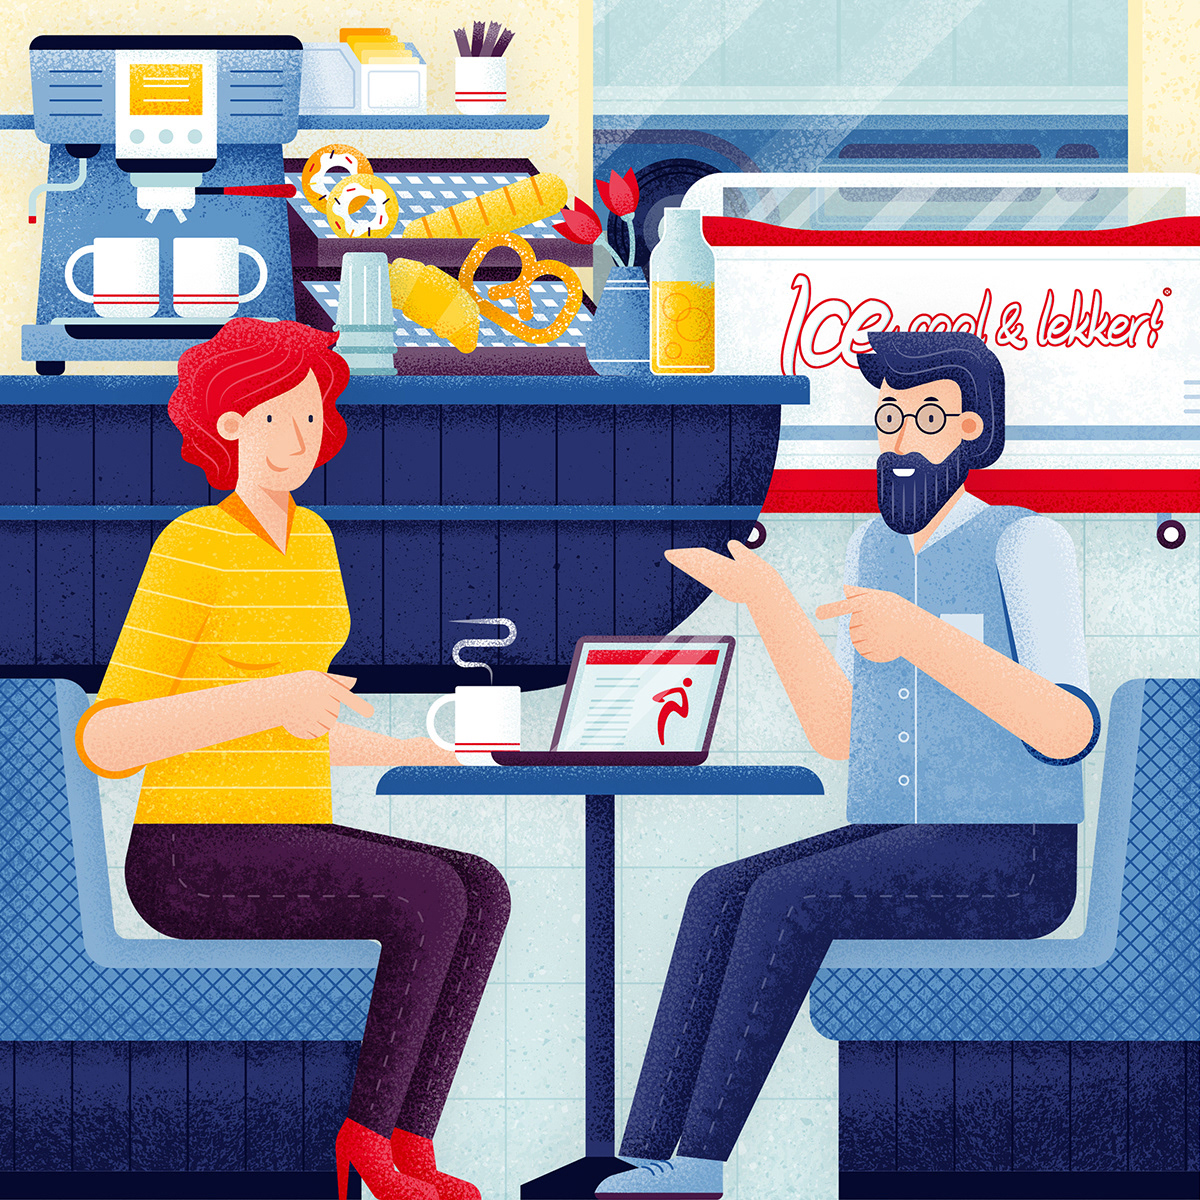 Illustration for Lekkerland magazine, shows a man and a woman sitting in a lekkerland food store and